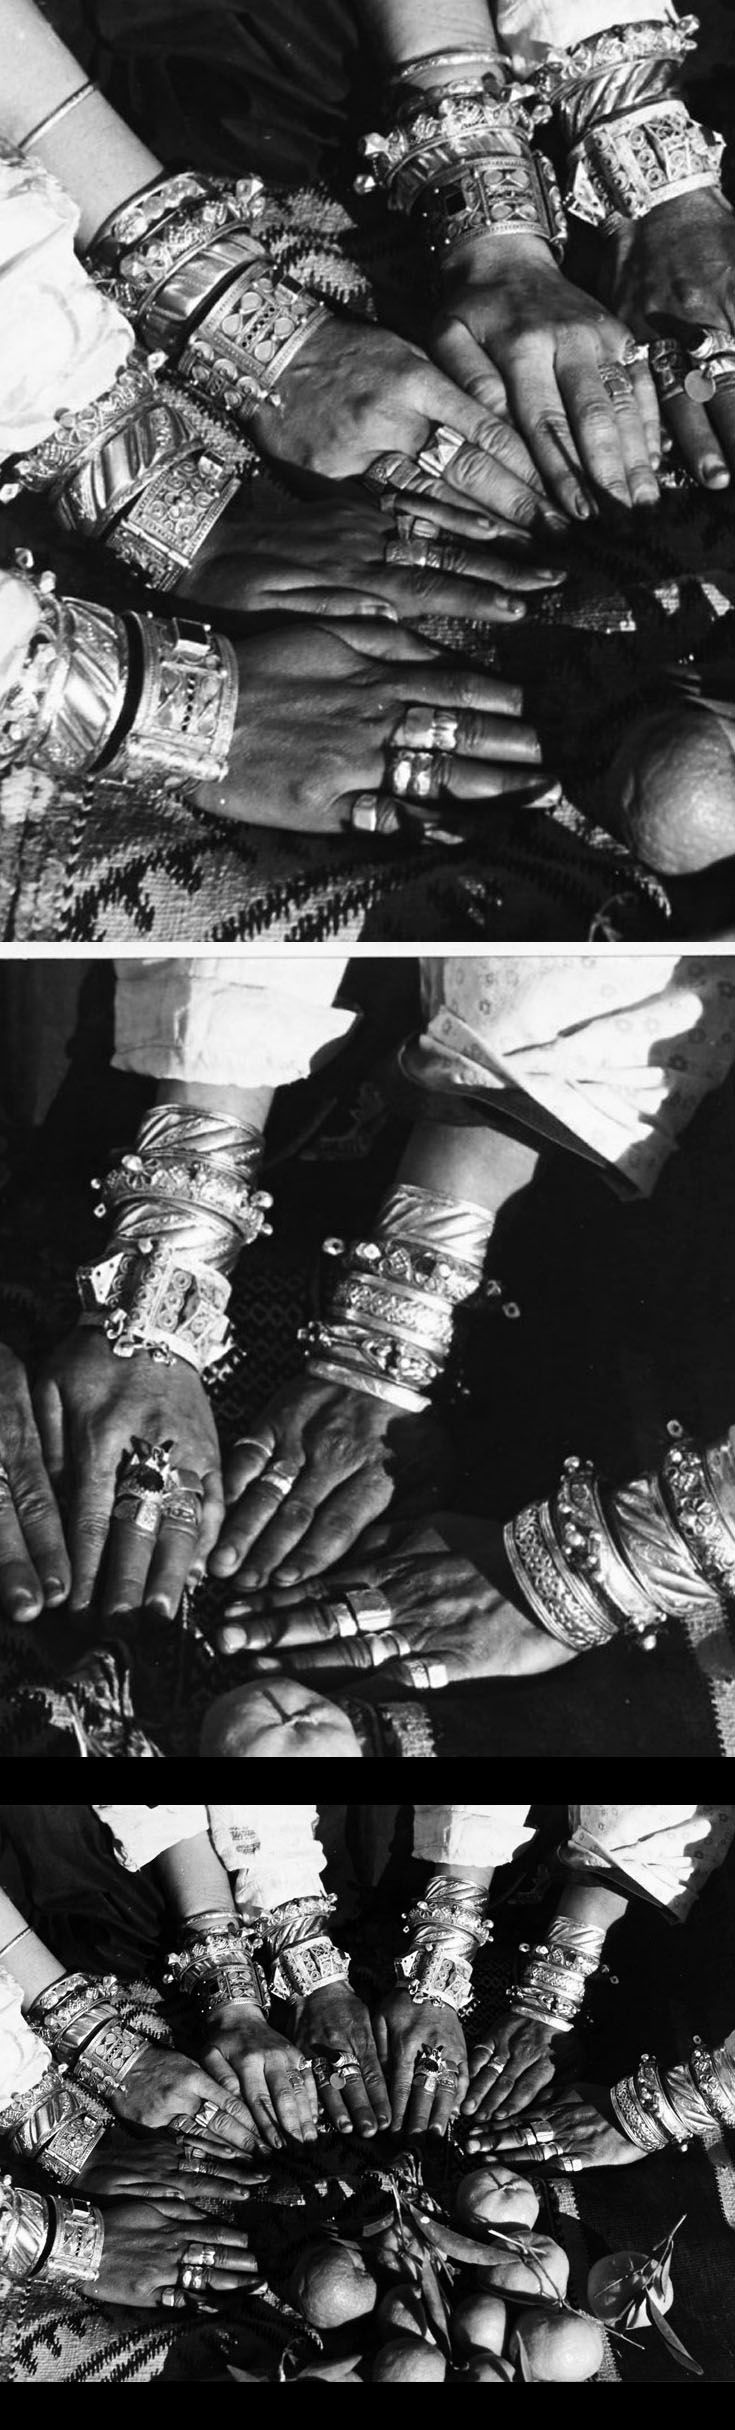 From a portfolio of prints by Jean Besancenot, documenting the costumes and jewellery worn by the women in the Anti Atlas, Middle Atlas and High Atlas region. ca. 1934 - 1939